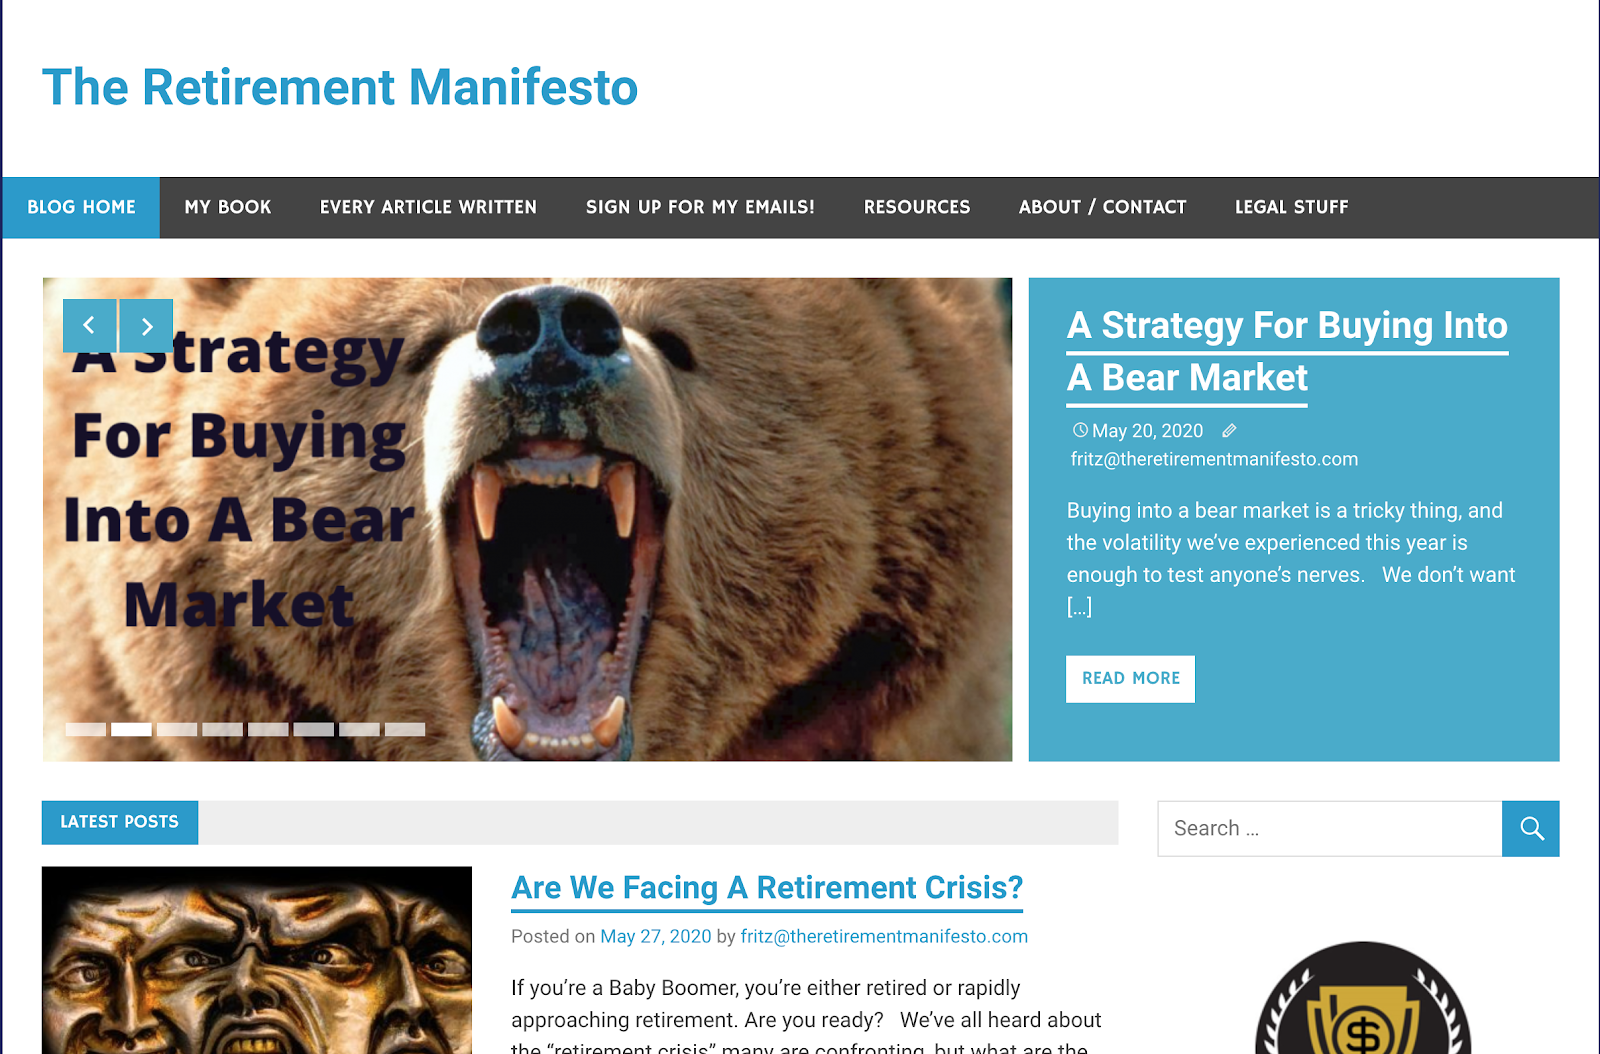 The Retirement Manifesto interface